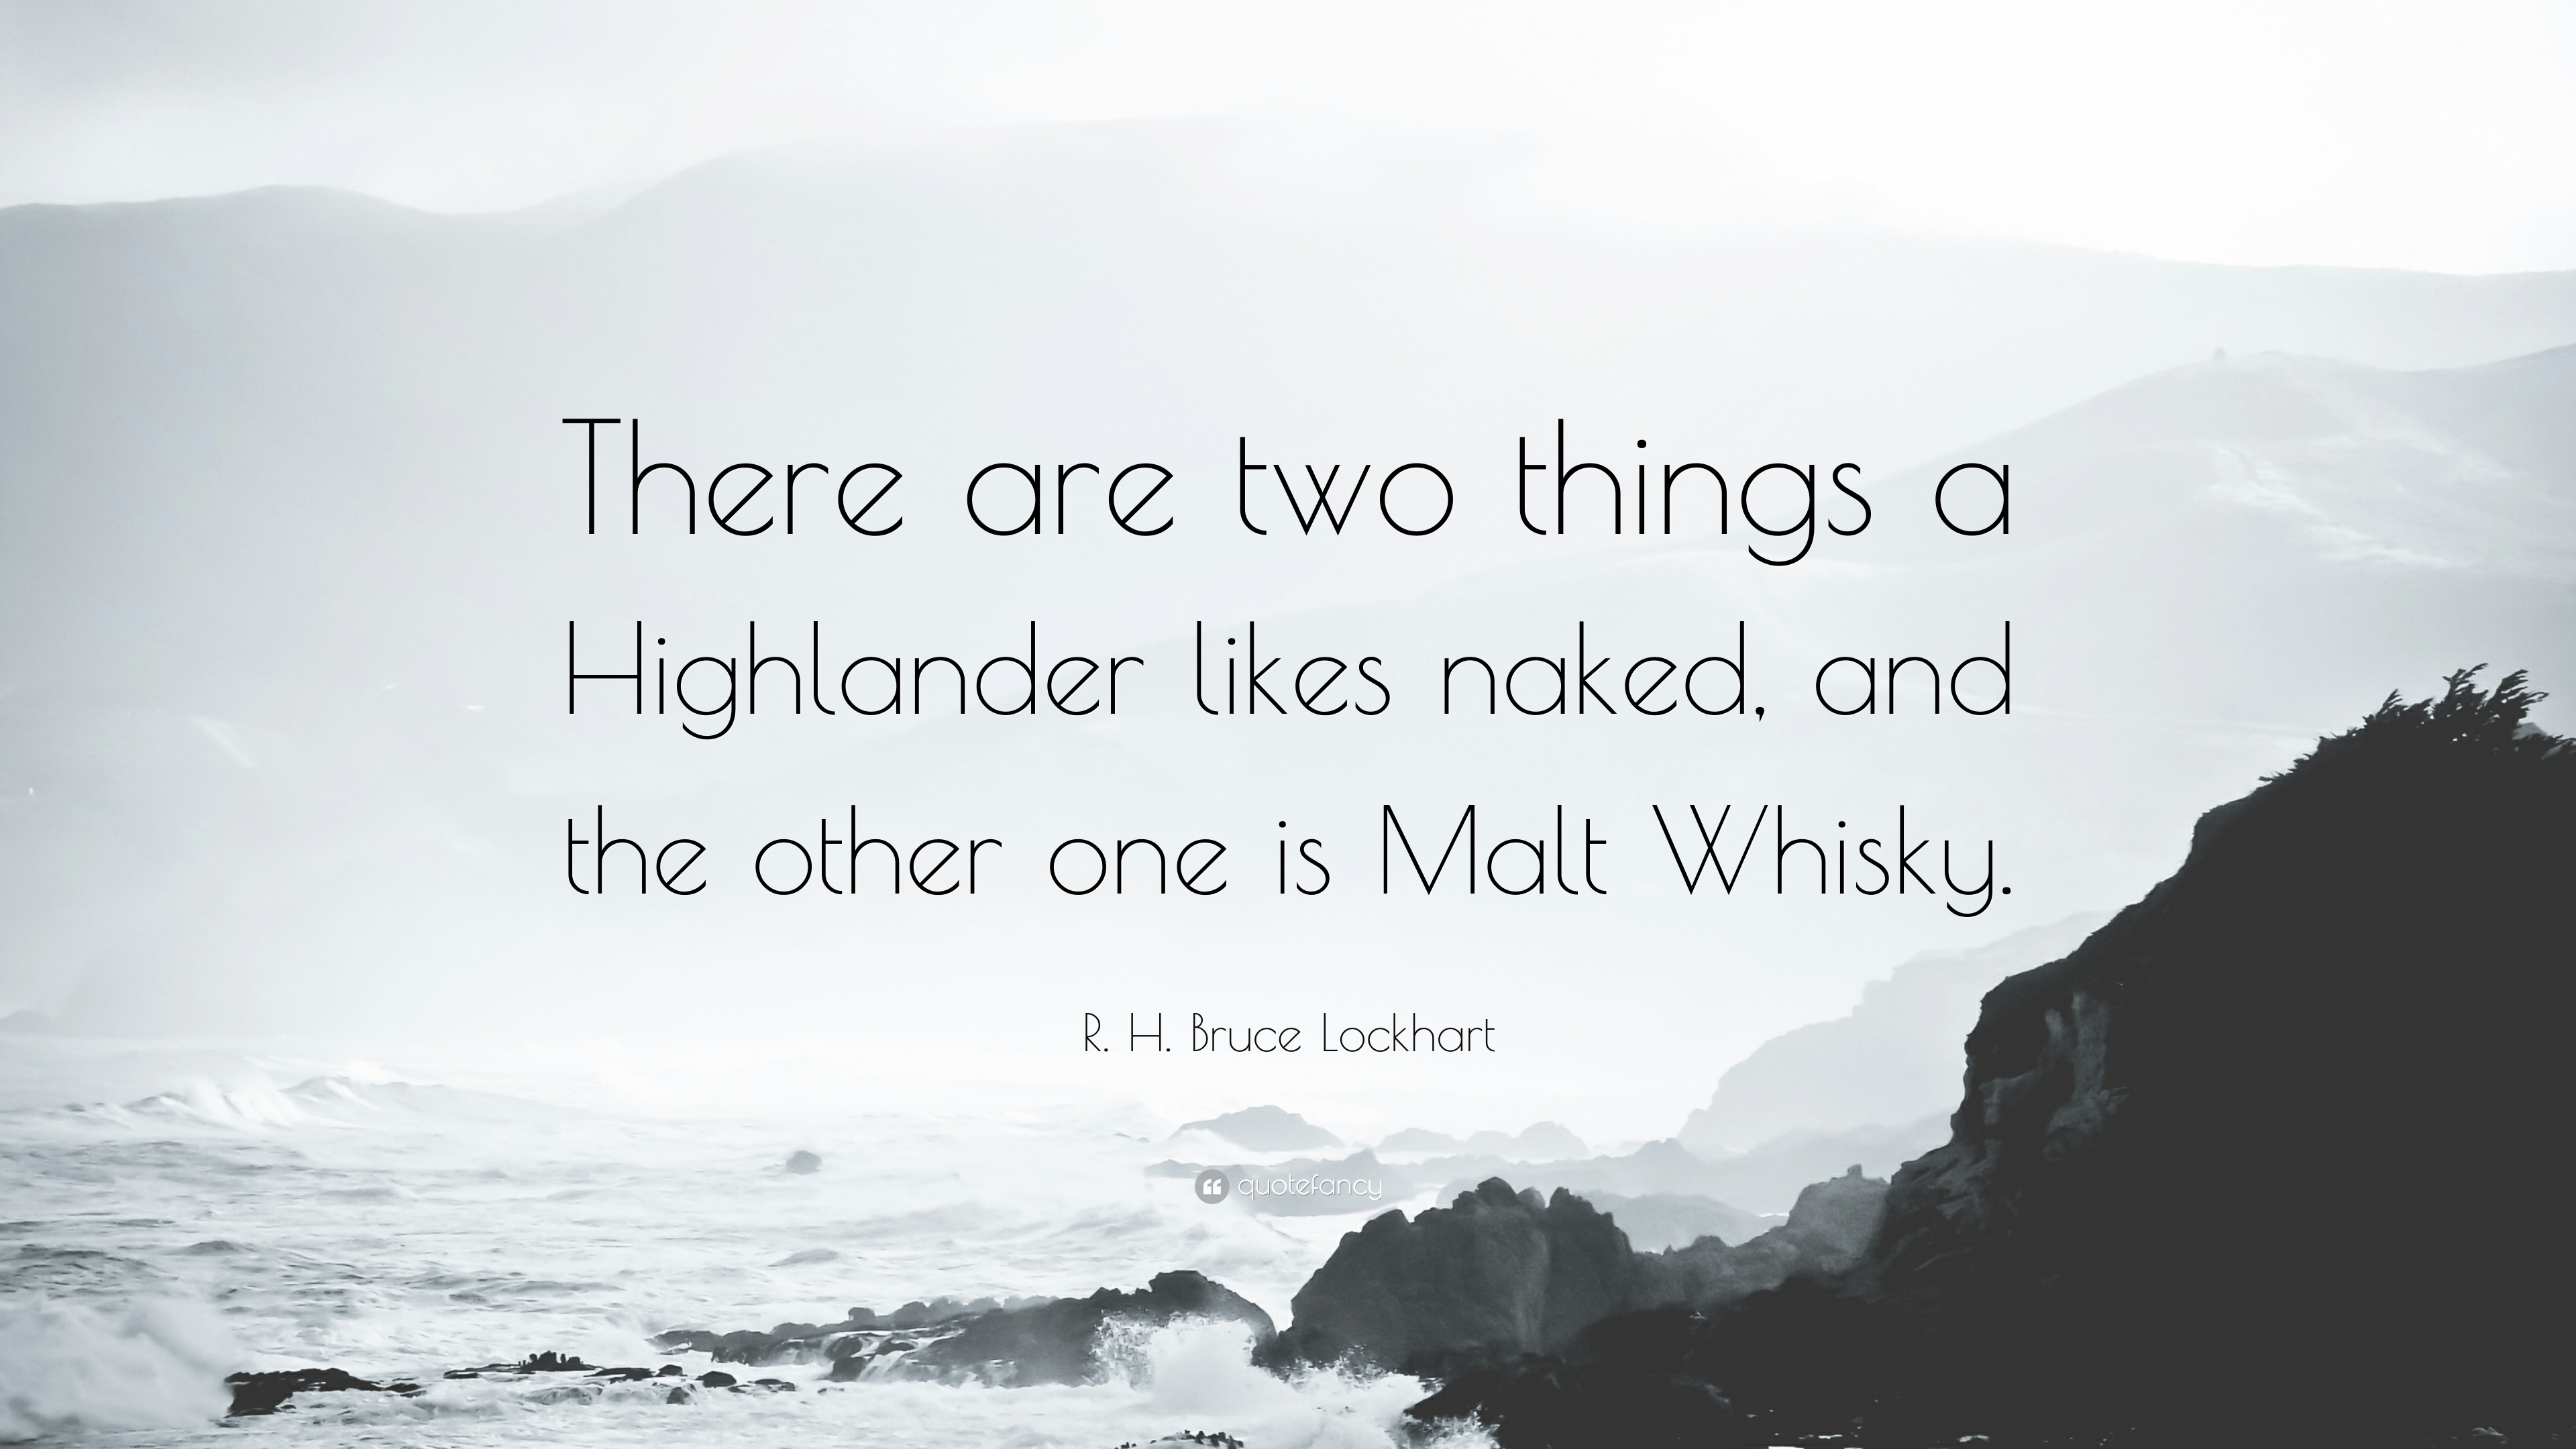 Highlander Quotes Rhbruce Lockhart Quotes 2 Wallpapers  Quotefancy